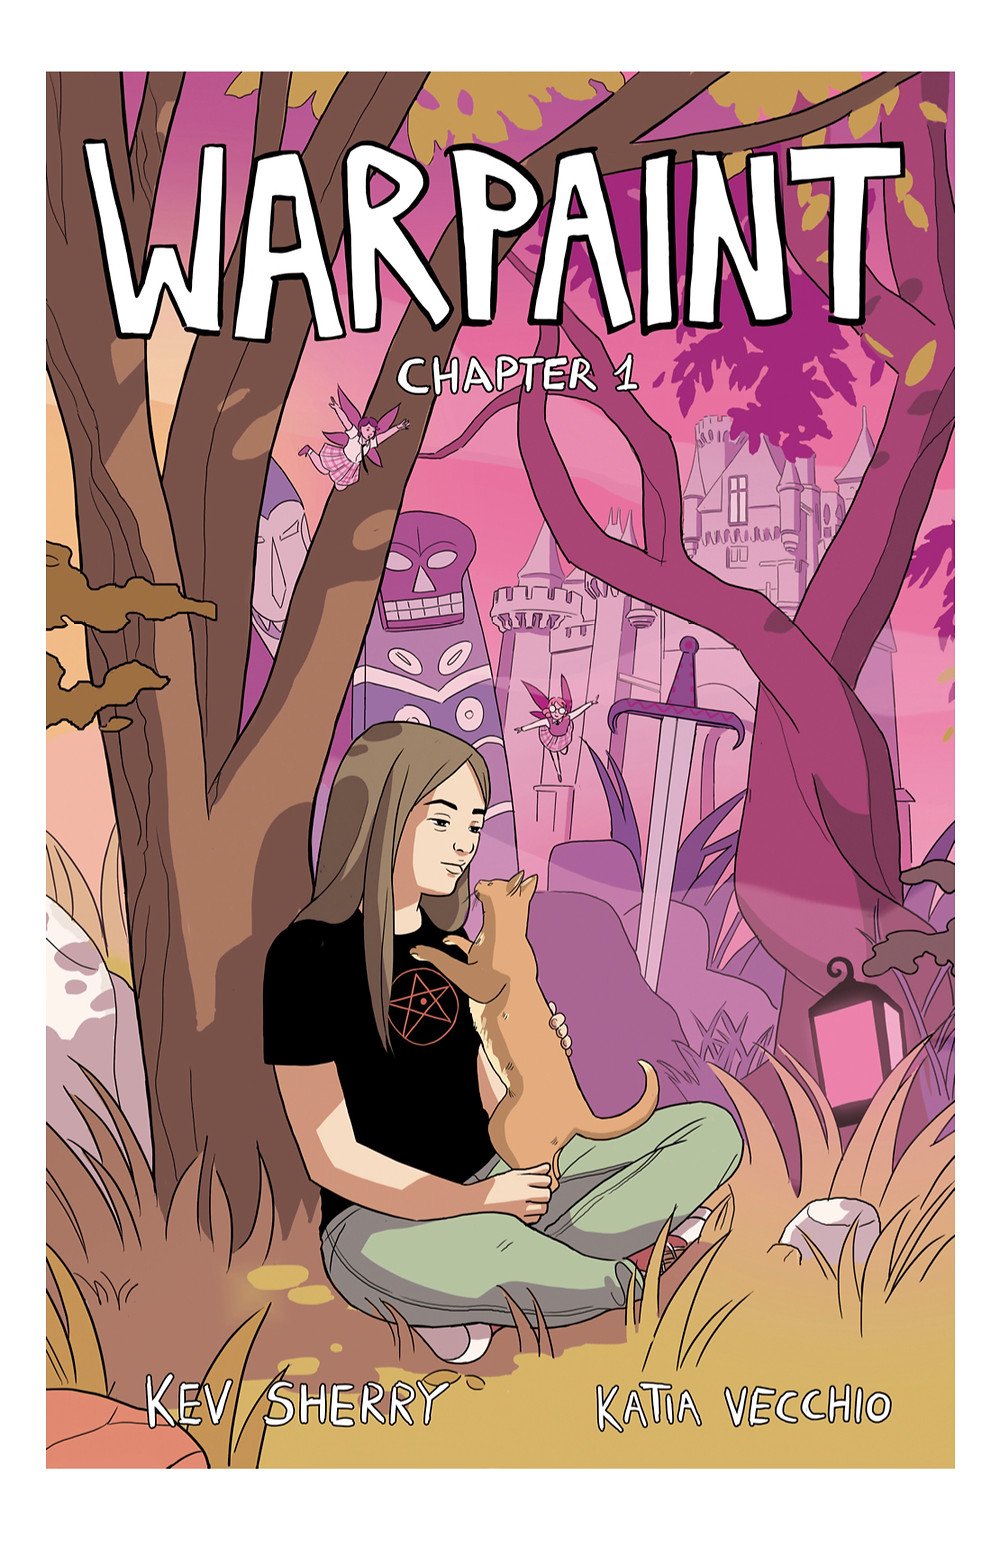 Warpaint, issue #1, cover, self-published, Sherry/Vecchio